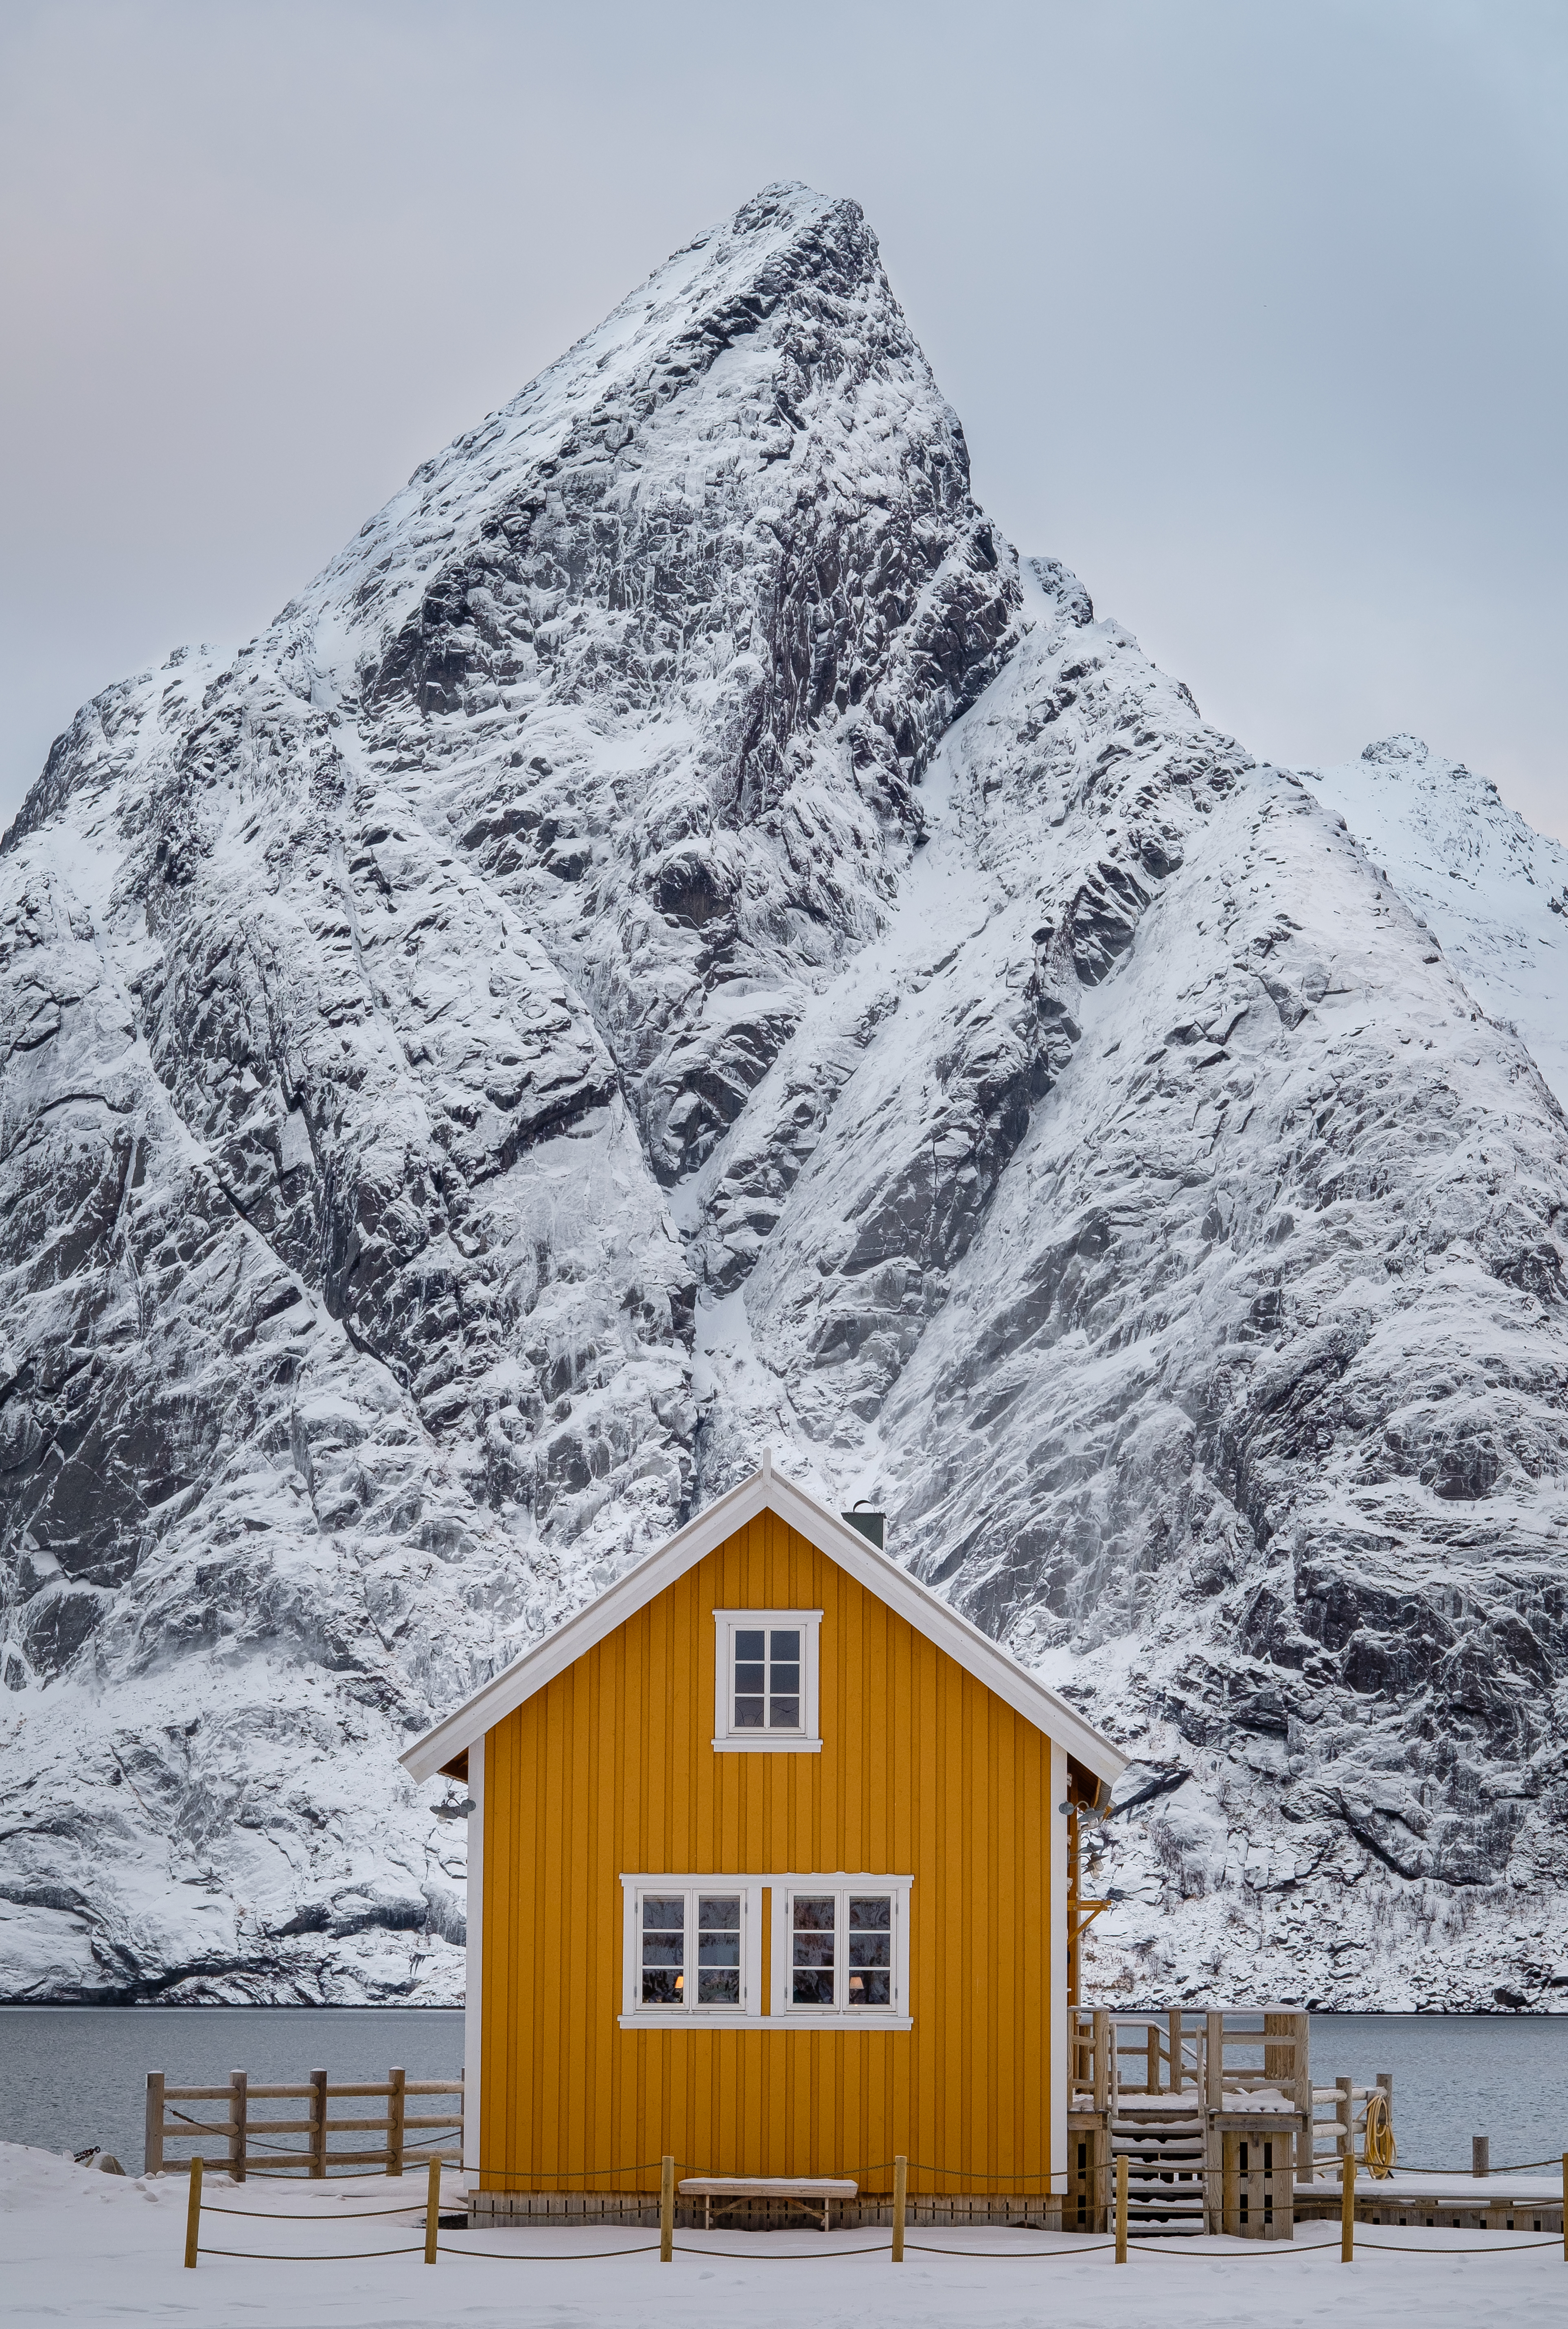 Yellow House and Mountain